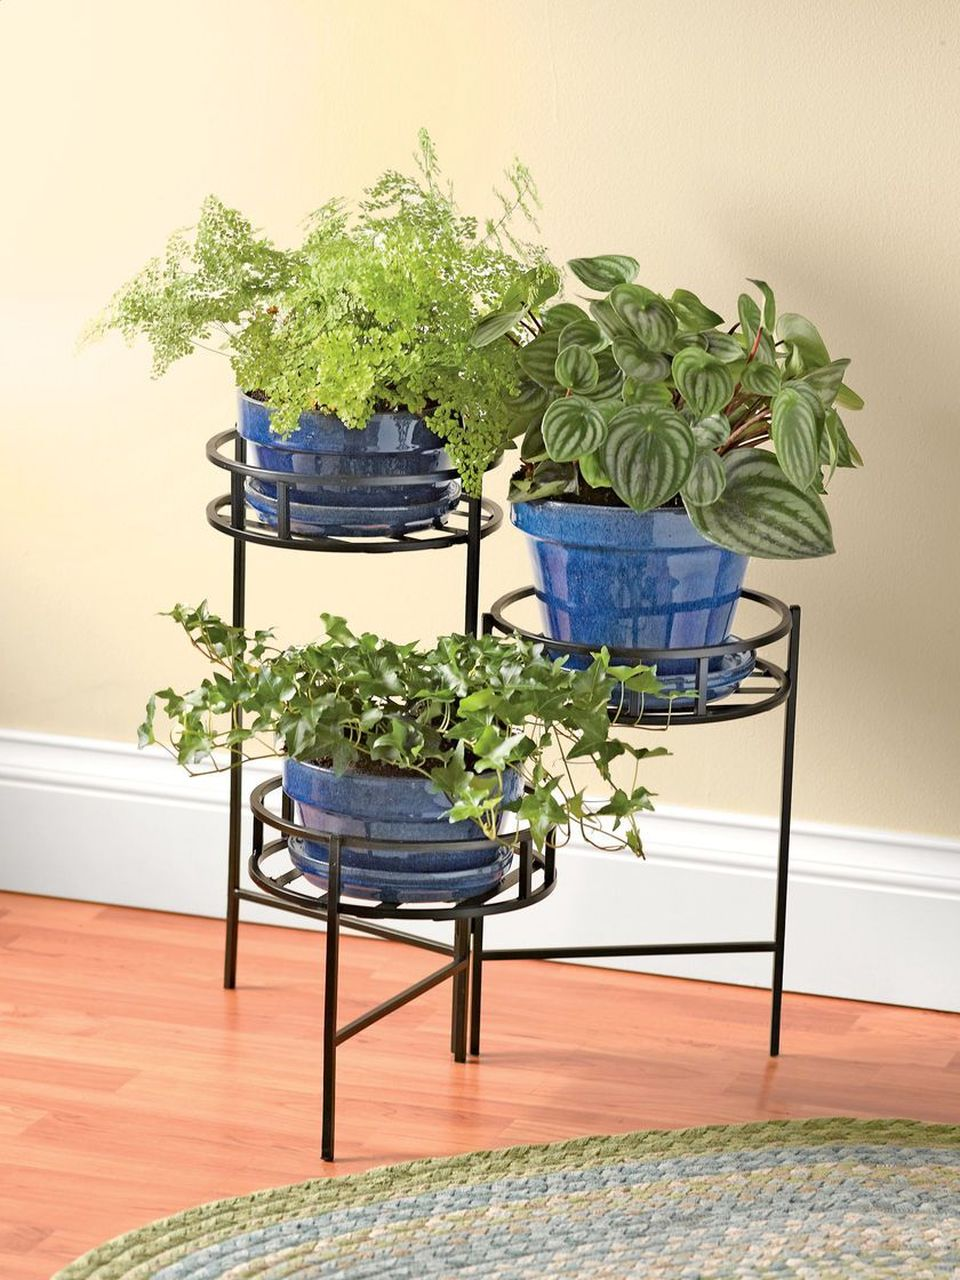 Cool Plant Stand Design Ideas for Indoor Houseplant 25 ... on Amazing Plant Stand Ideas  id=72862